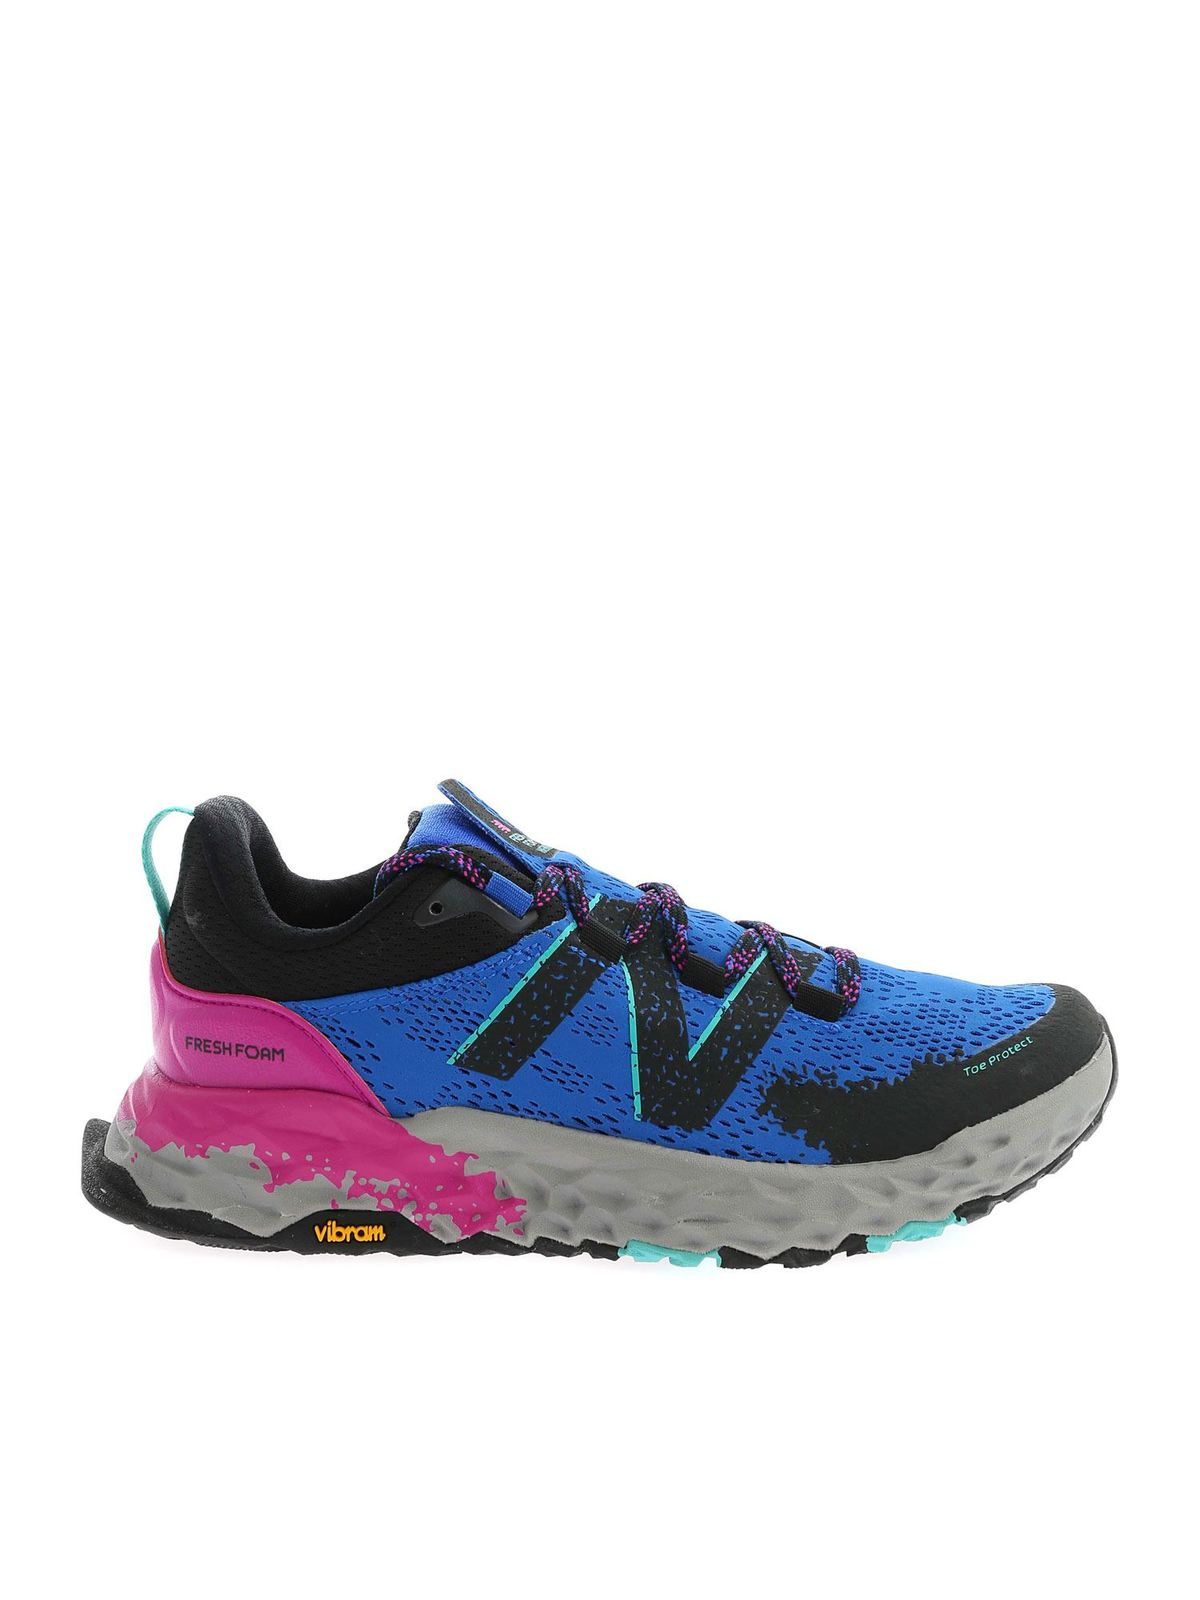 New Balance PAINTED EFFECT SNEAKERS IN BLUE AND BLACK